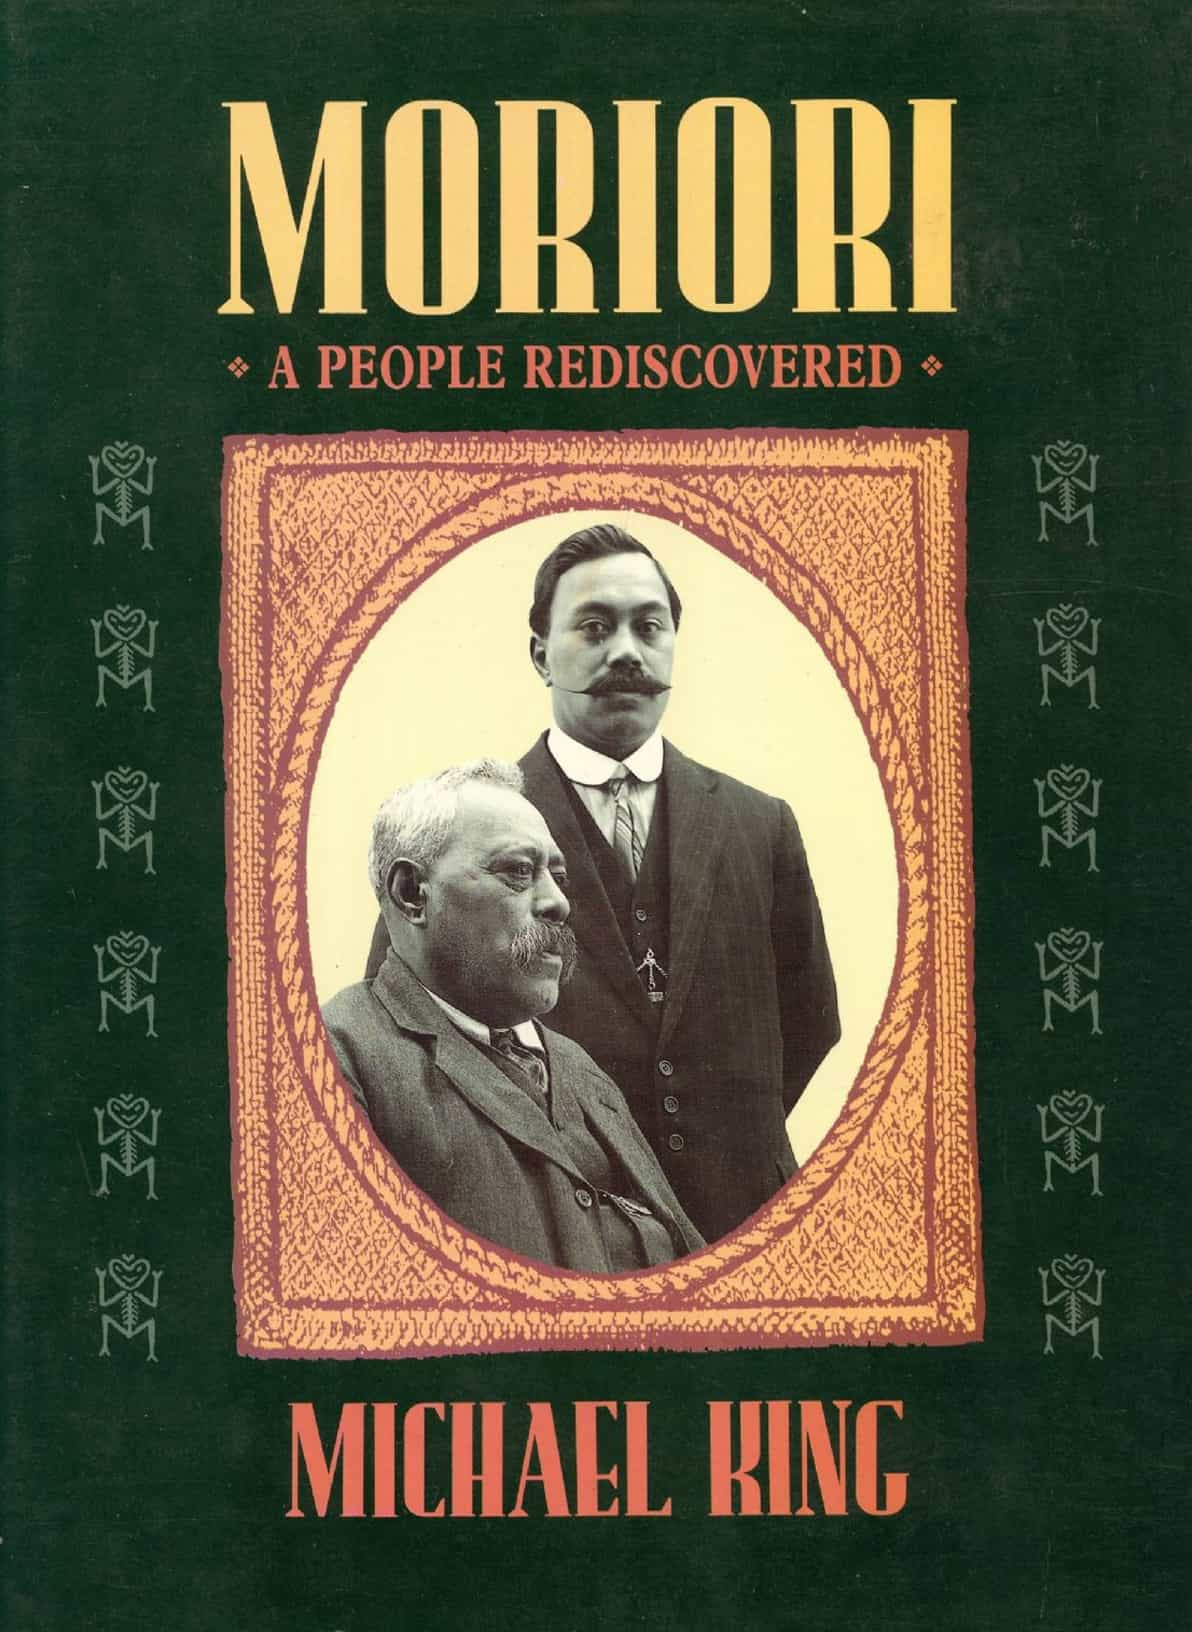 Cover of Michael King's book Moriori: A People Rediscovered.